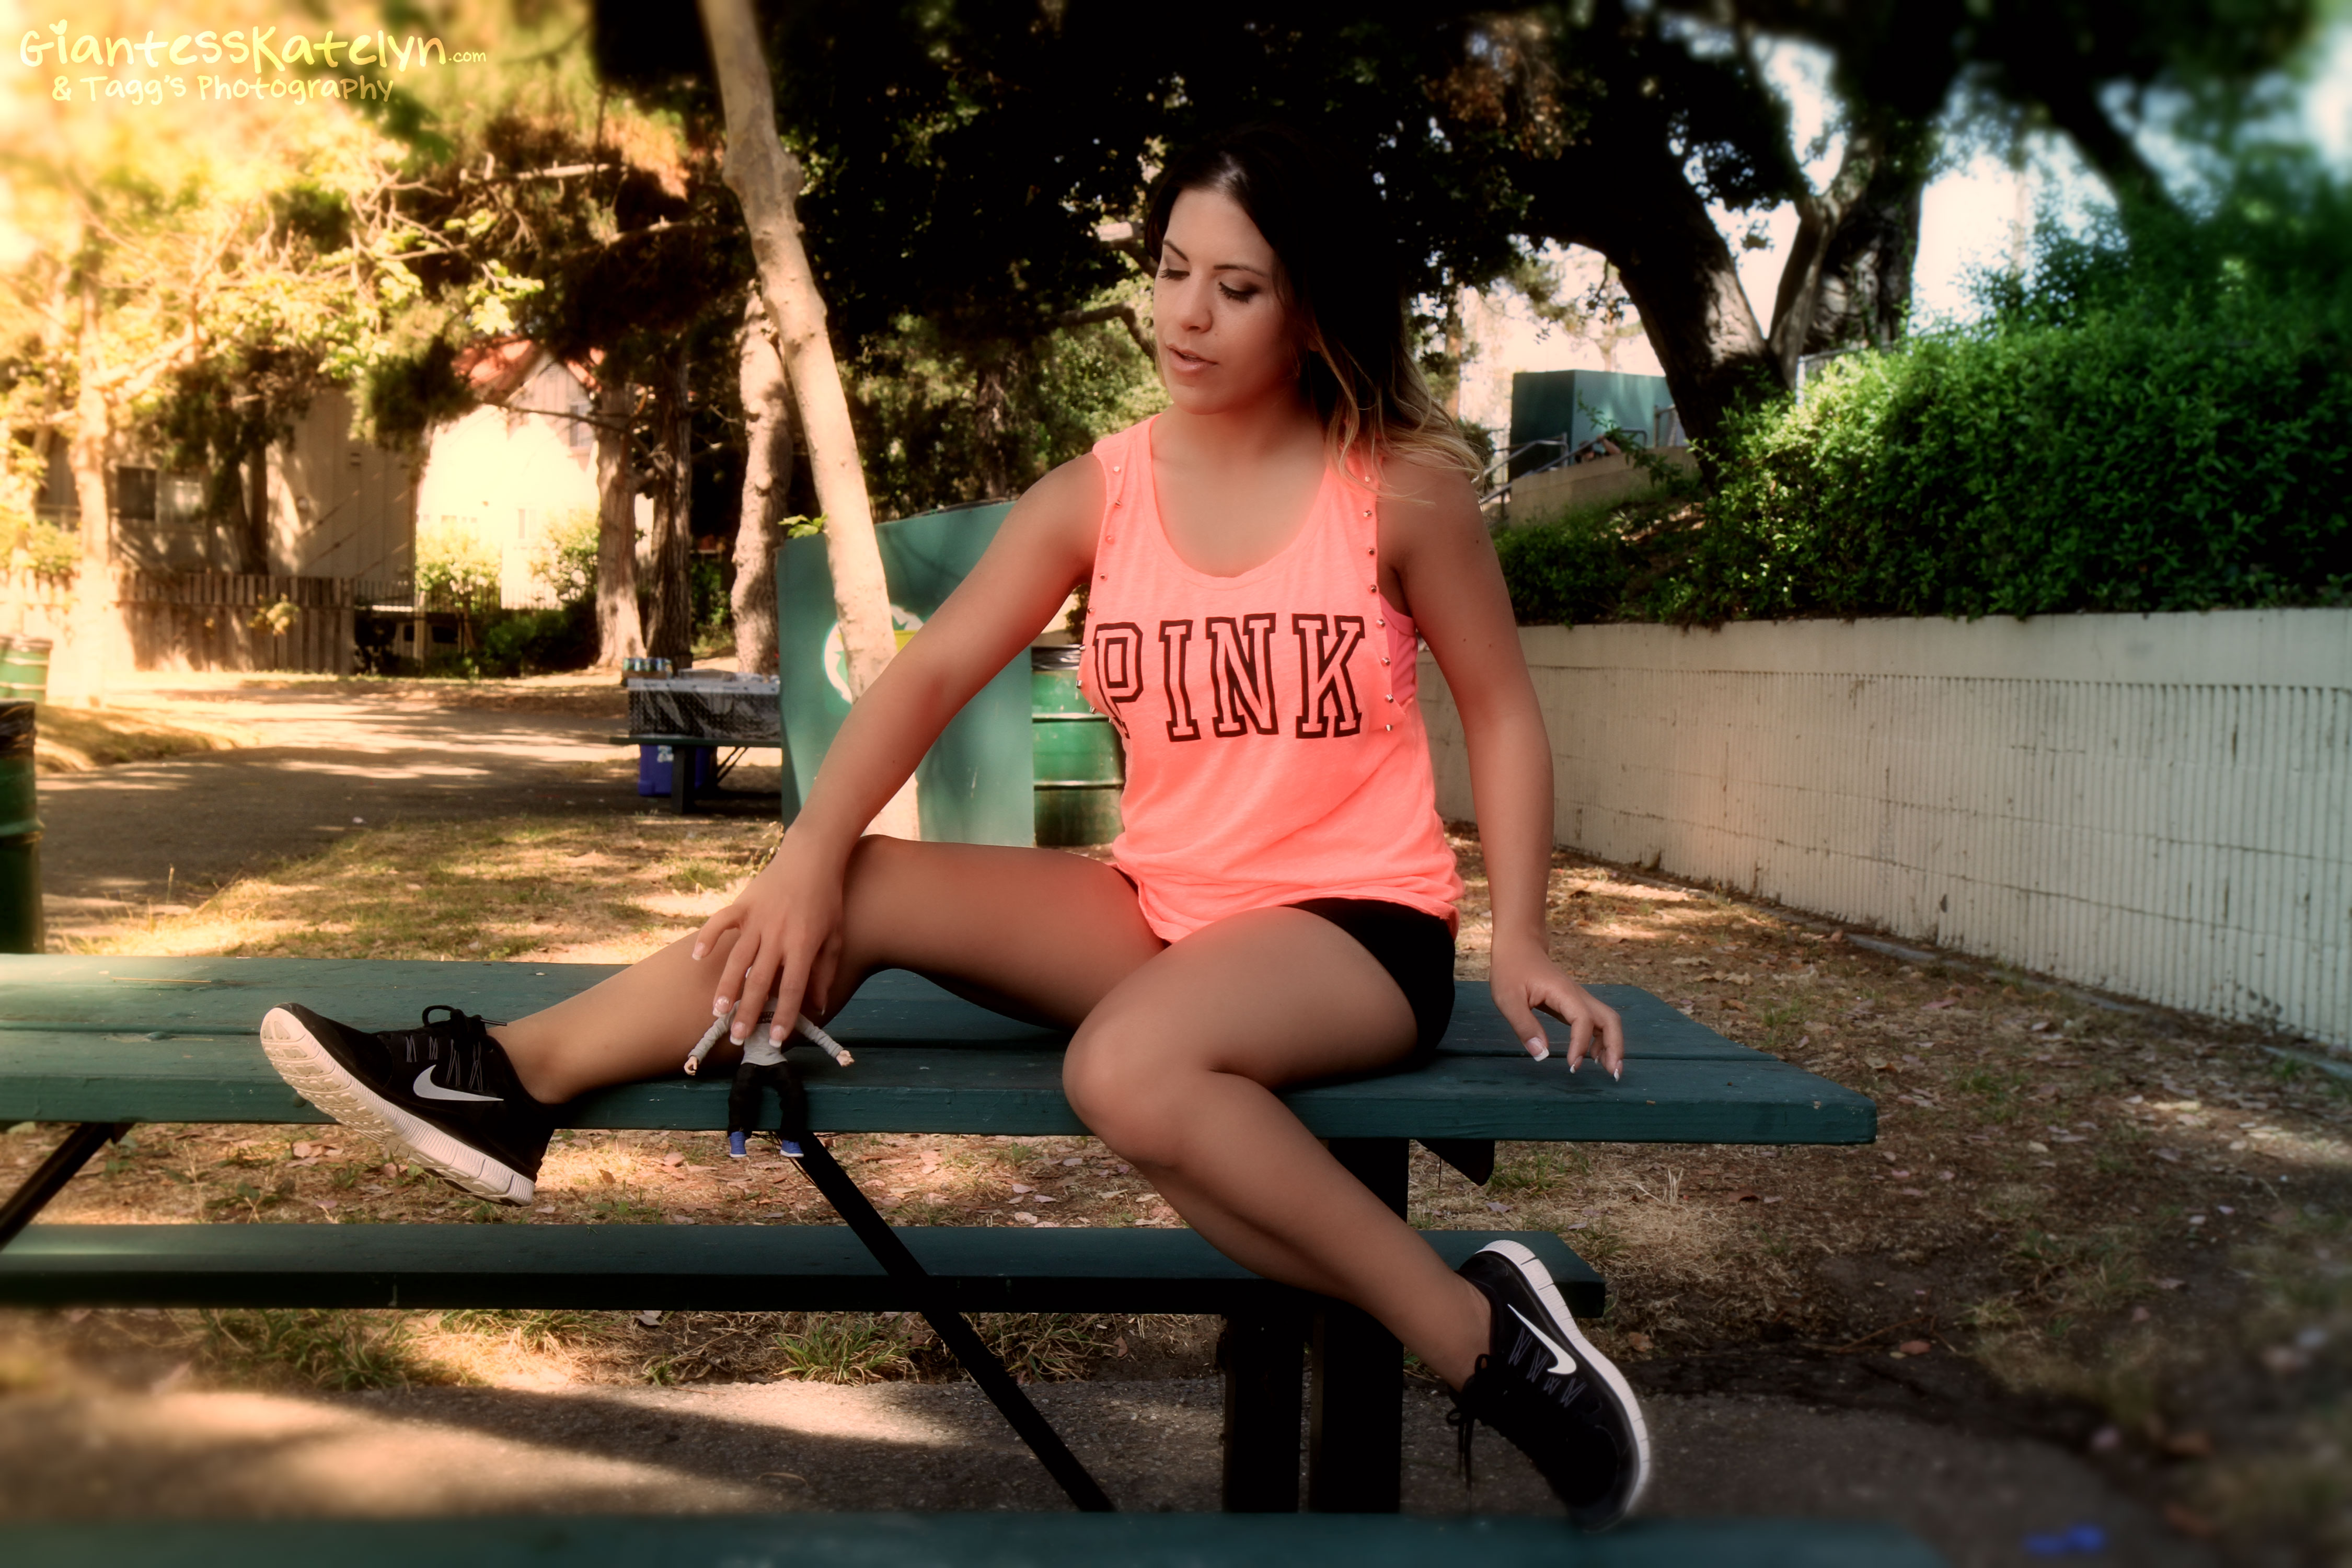 At_The_Park_with_Giantess_Katelyn-05